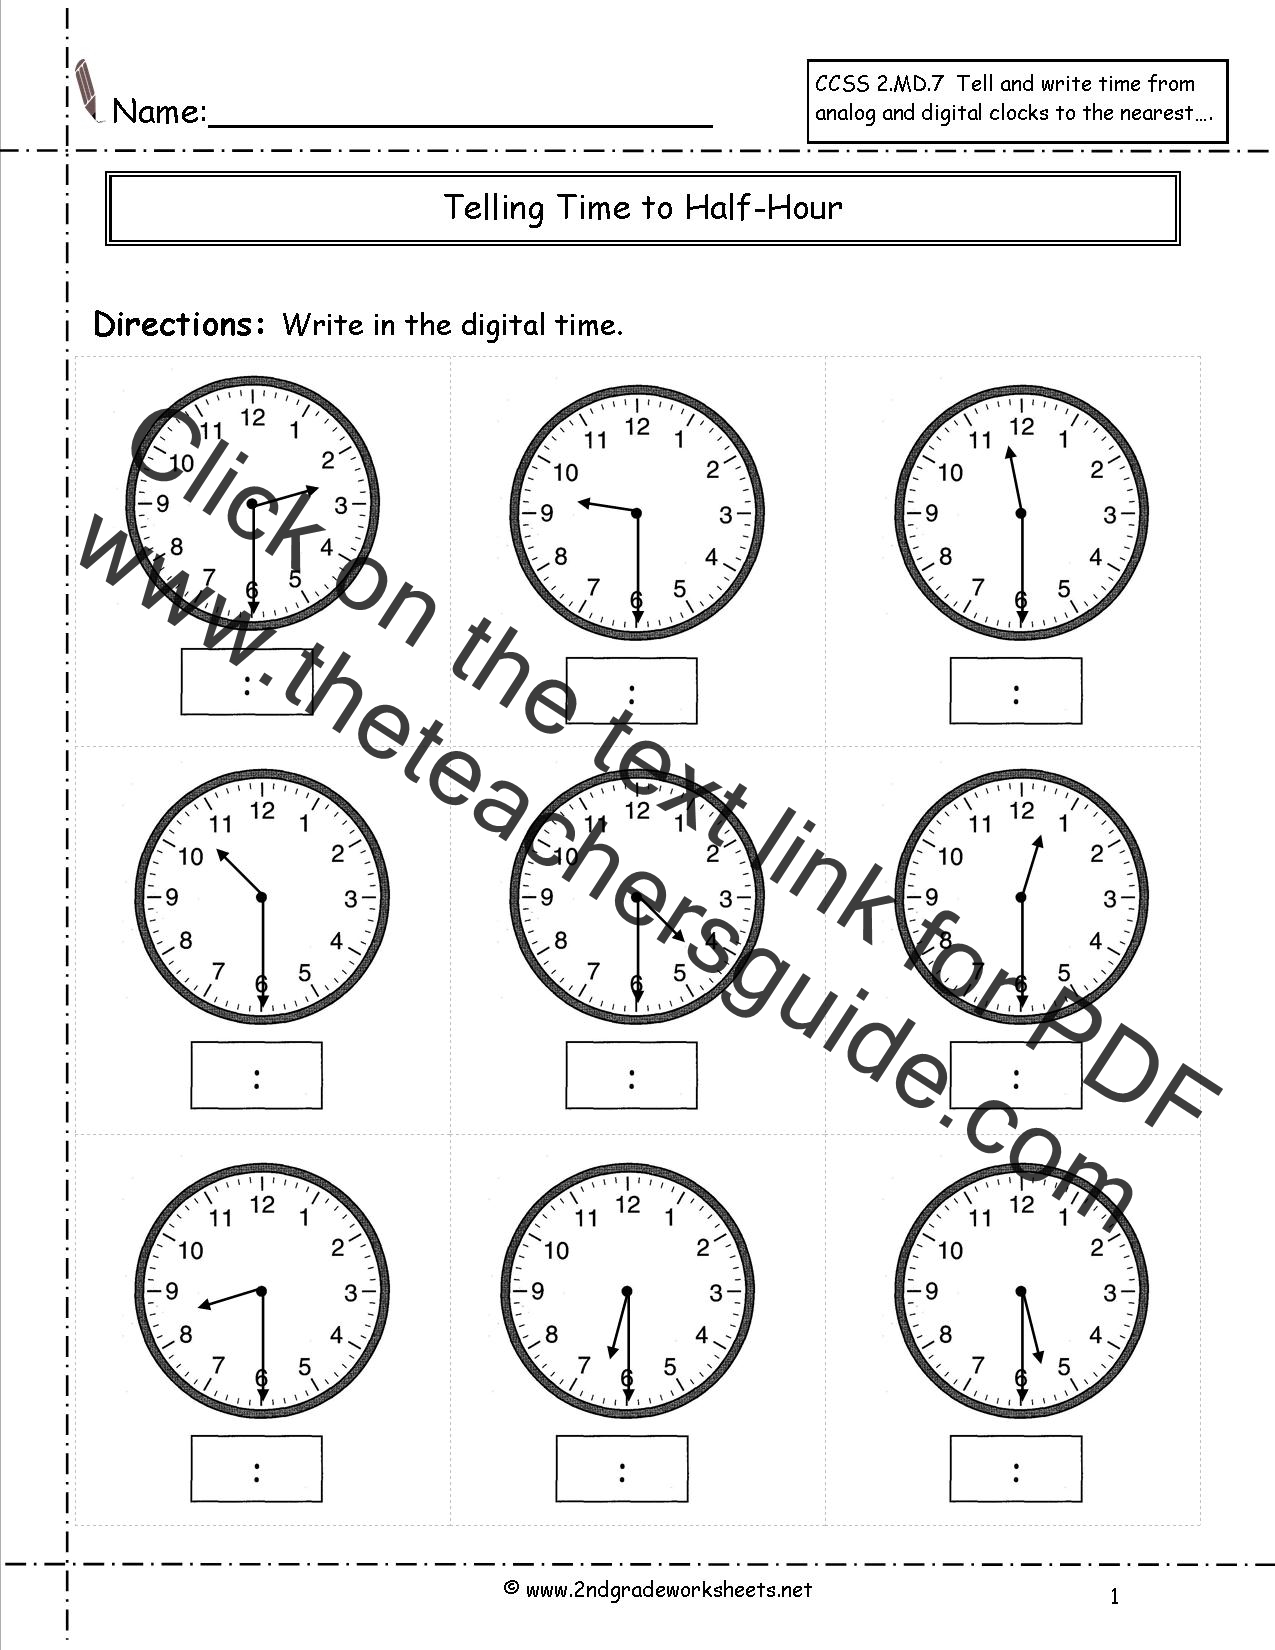 Worksheets Clock Worksheets Grade 2 telling and writing time worksheets to nearest half hour worksheet